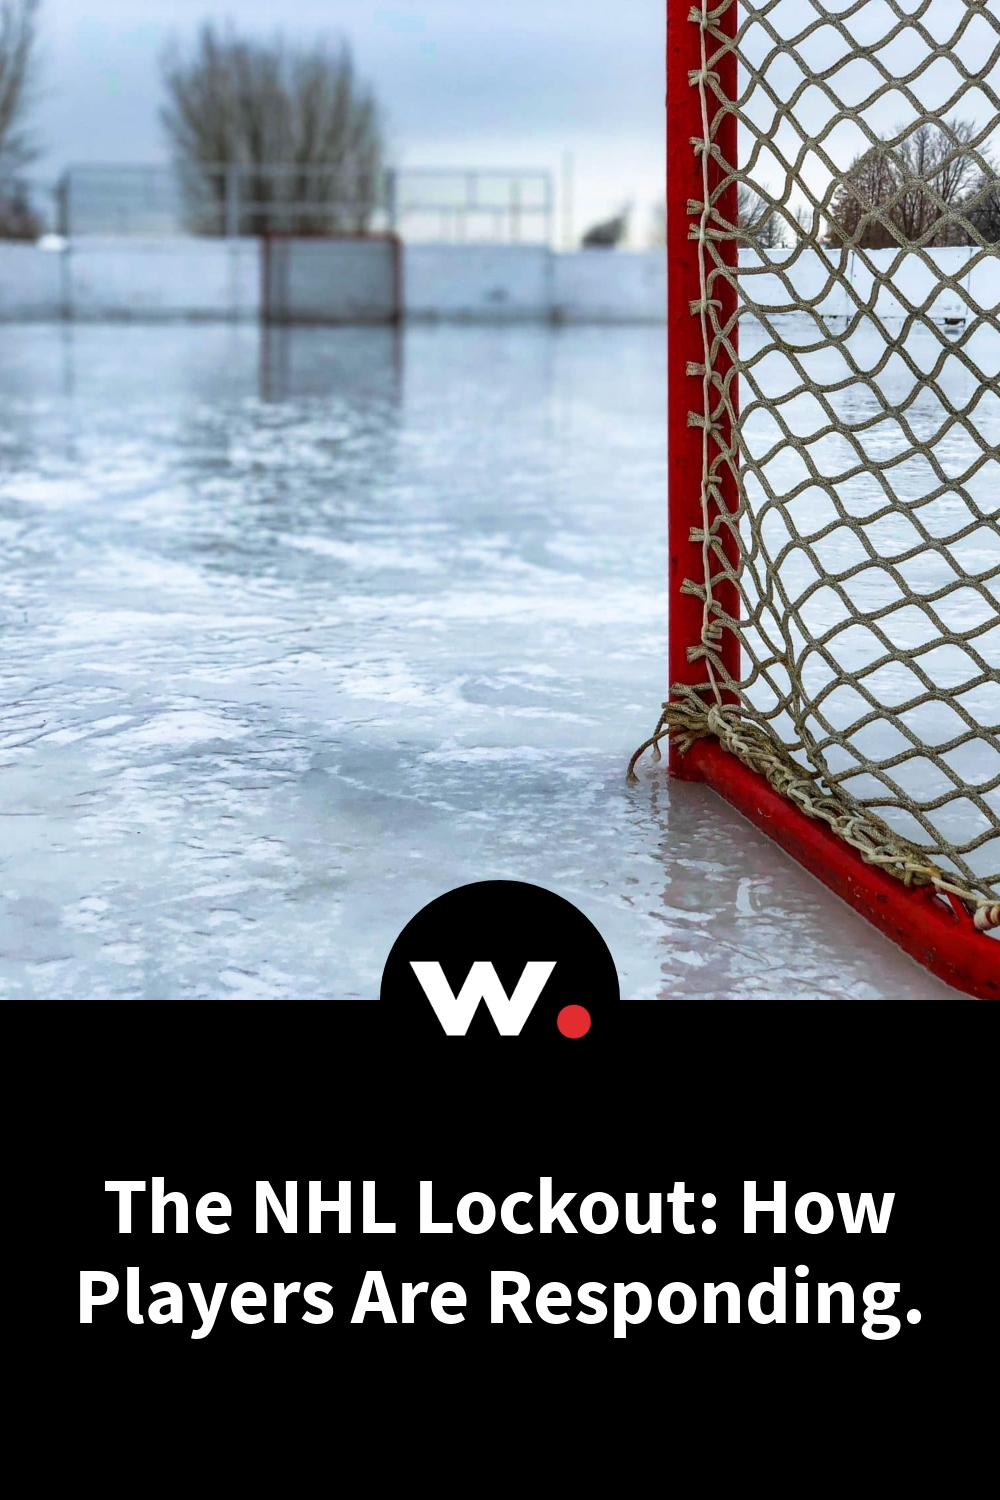 The NHL Lockout: How Players Are Responding.